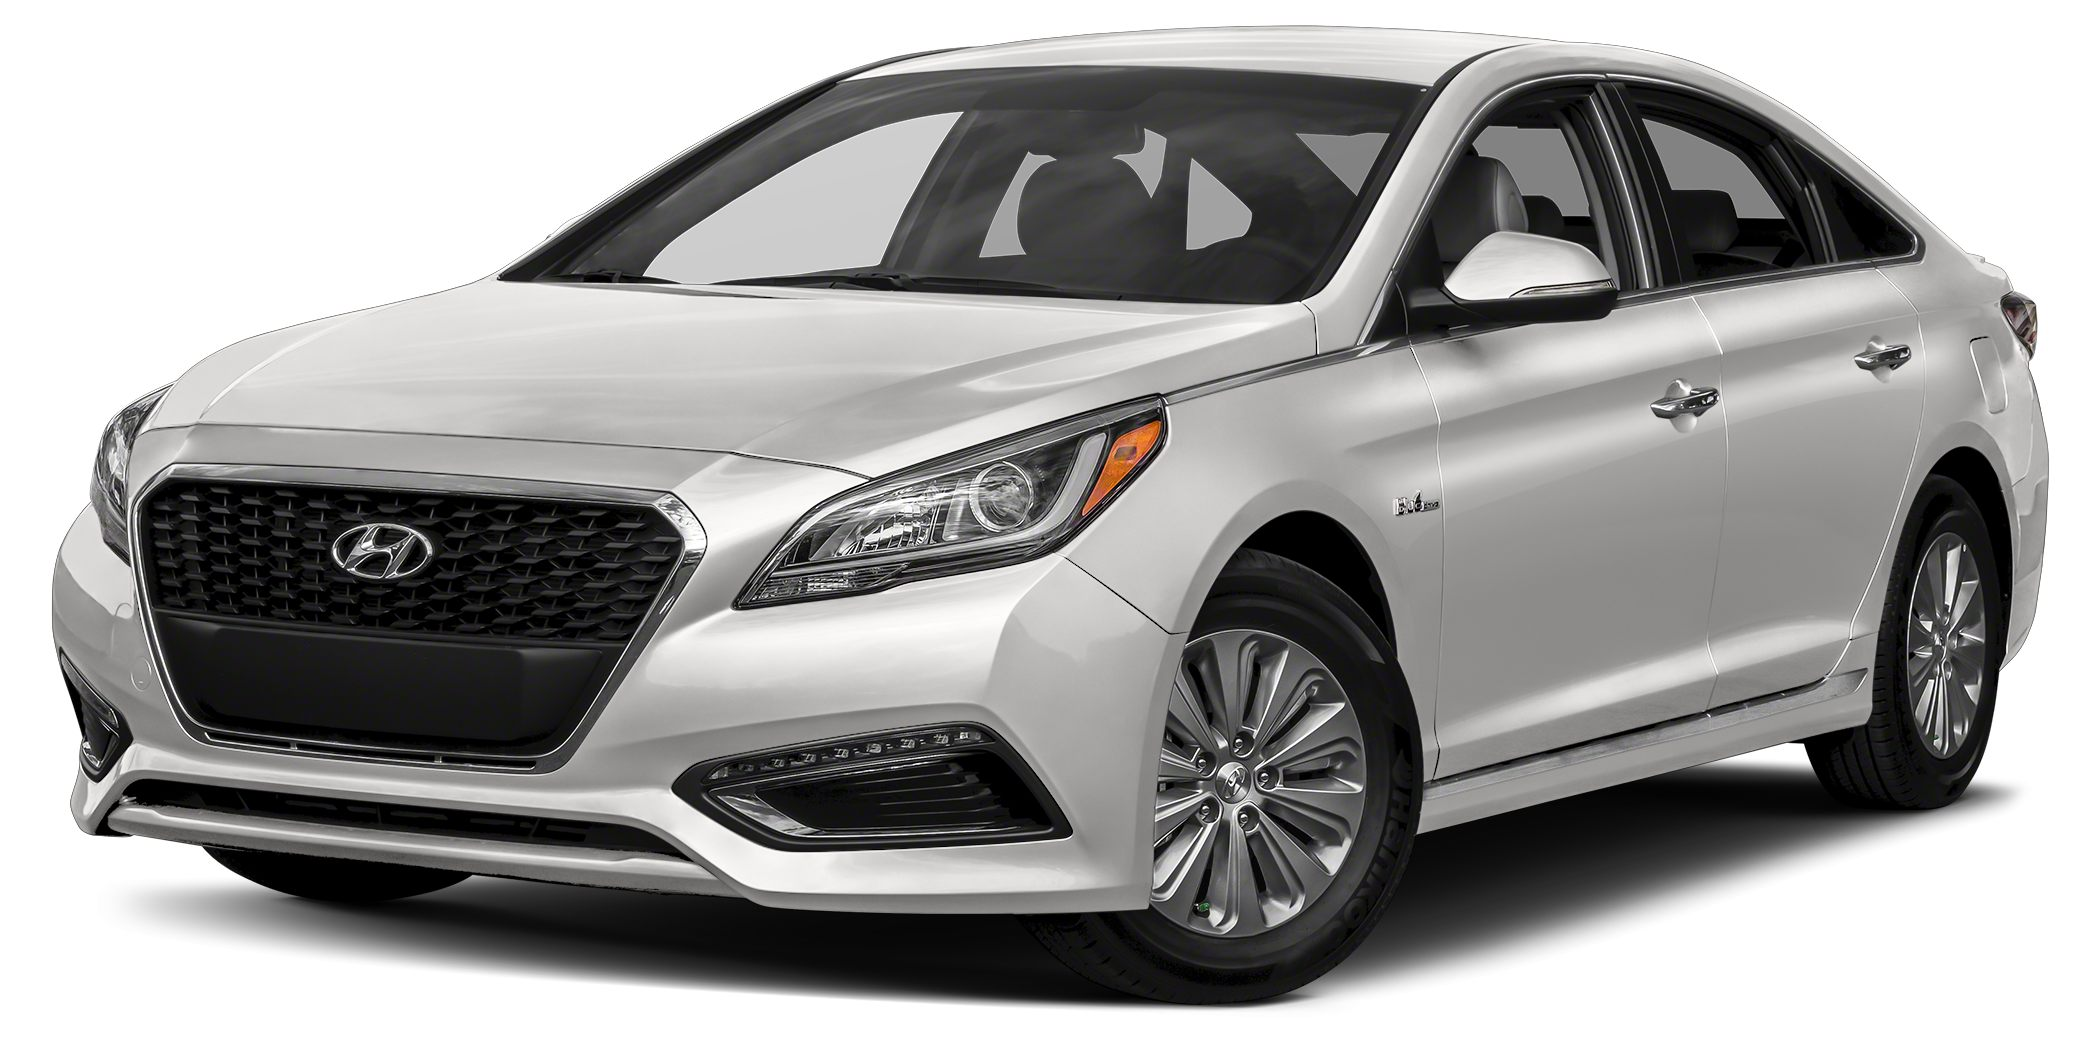 2017 Hyundai Sonata Hybrid SE Transparency is our goal The Our Cost Price reflects all applicable